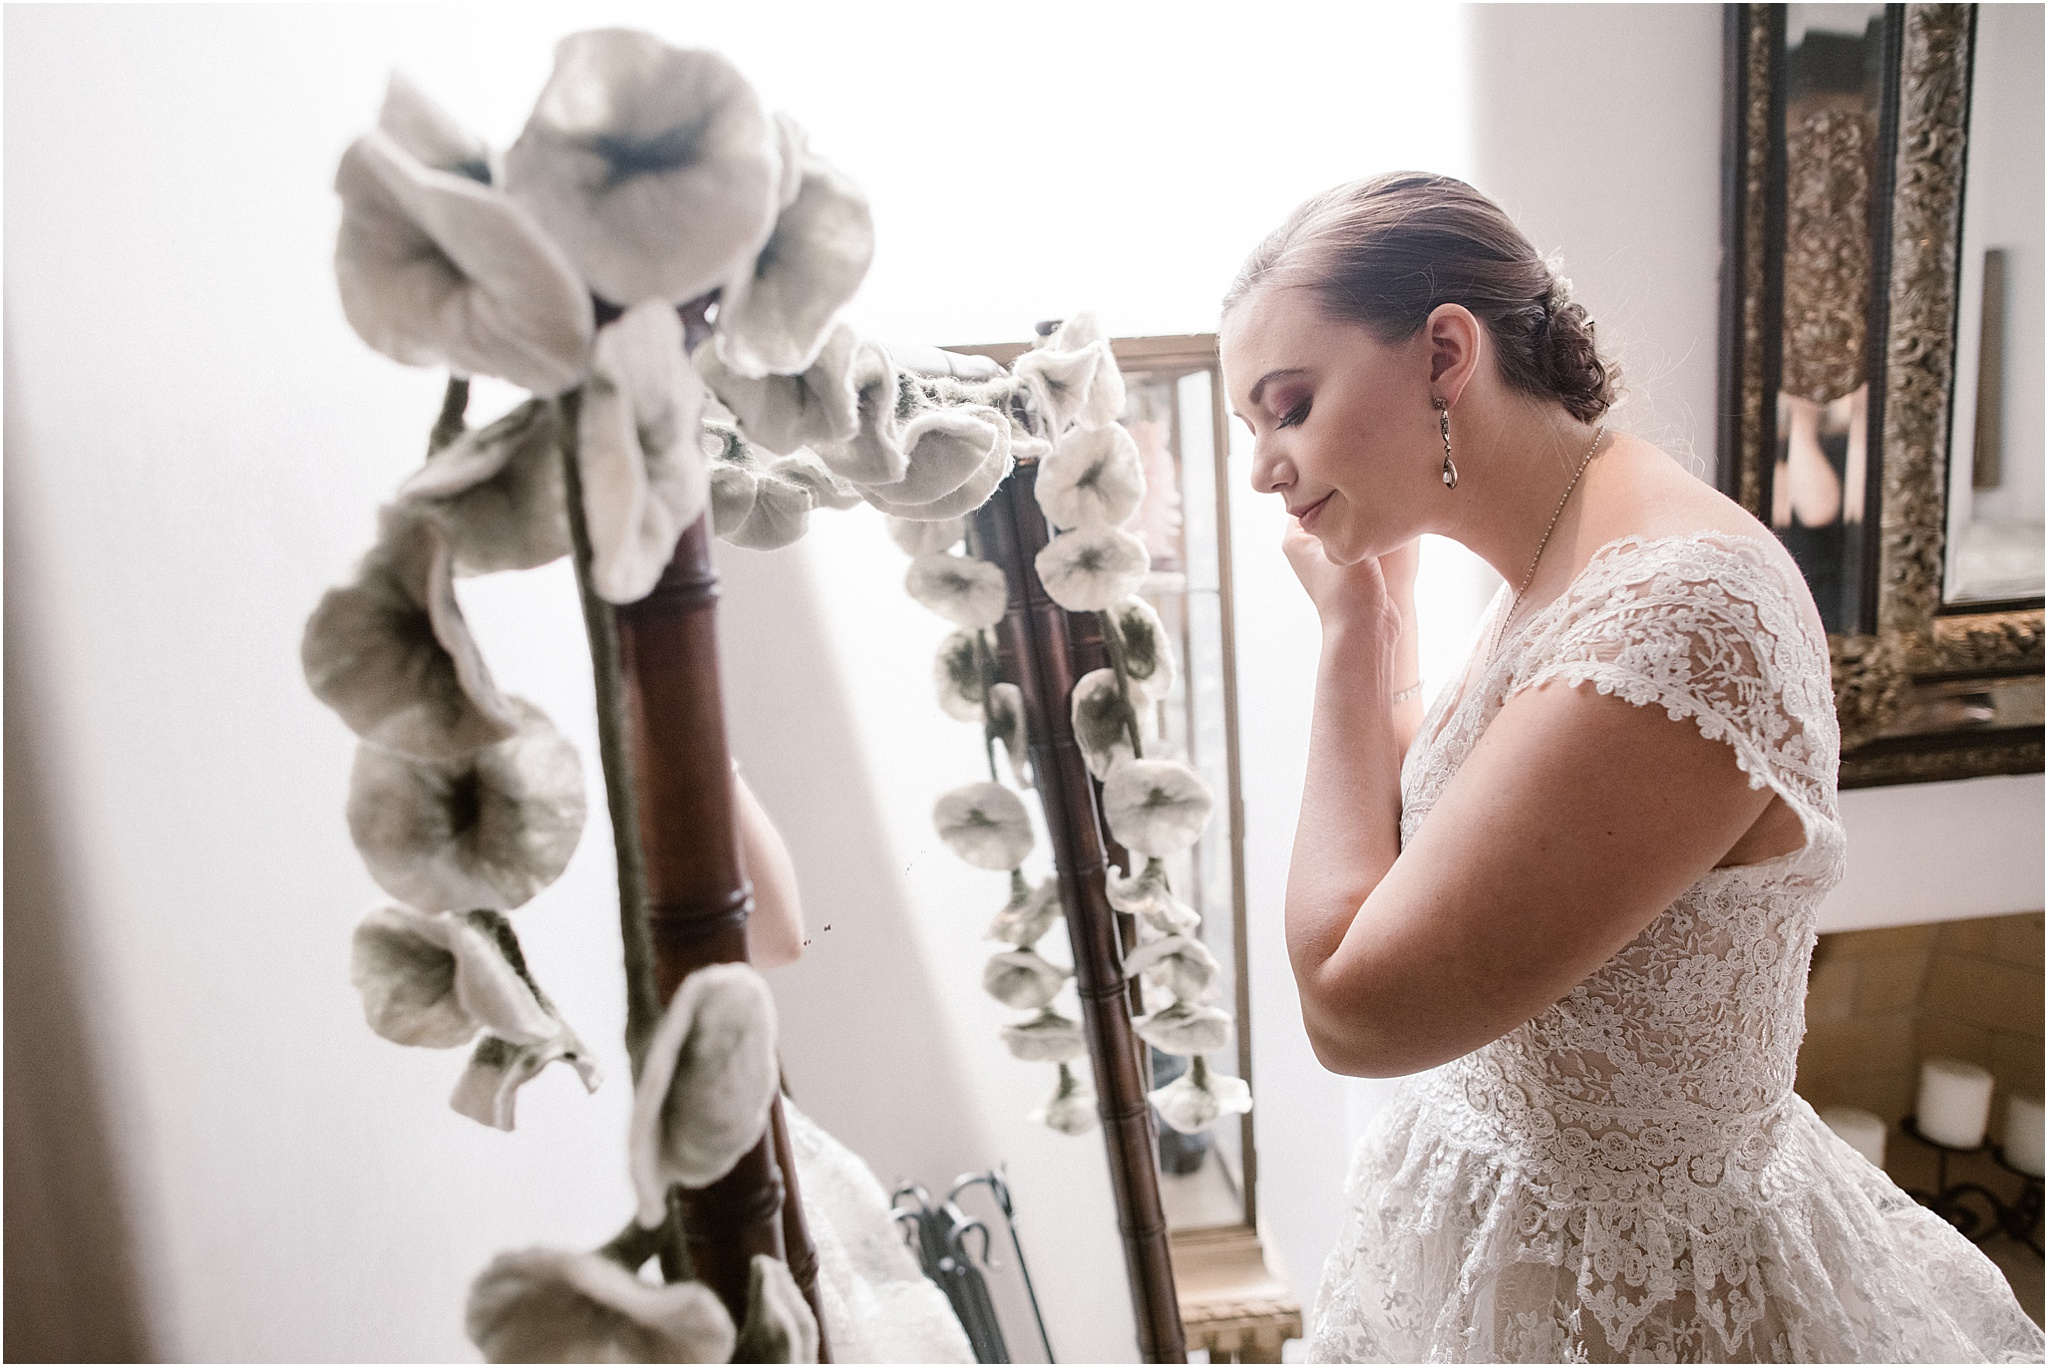 AMELIA_JASON_SANTA FE_ WEDDING_BLUE ROSE PHOTOGRAPHY45